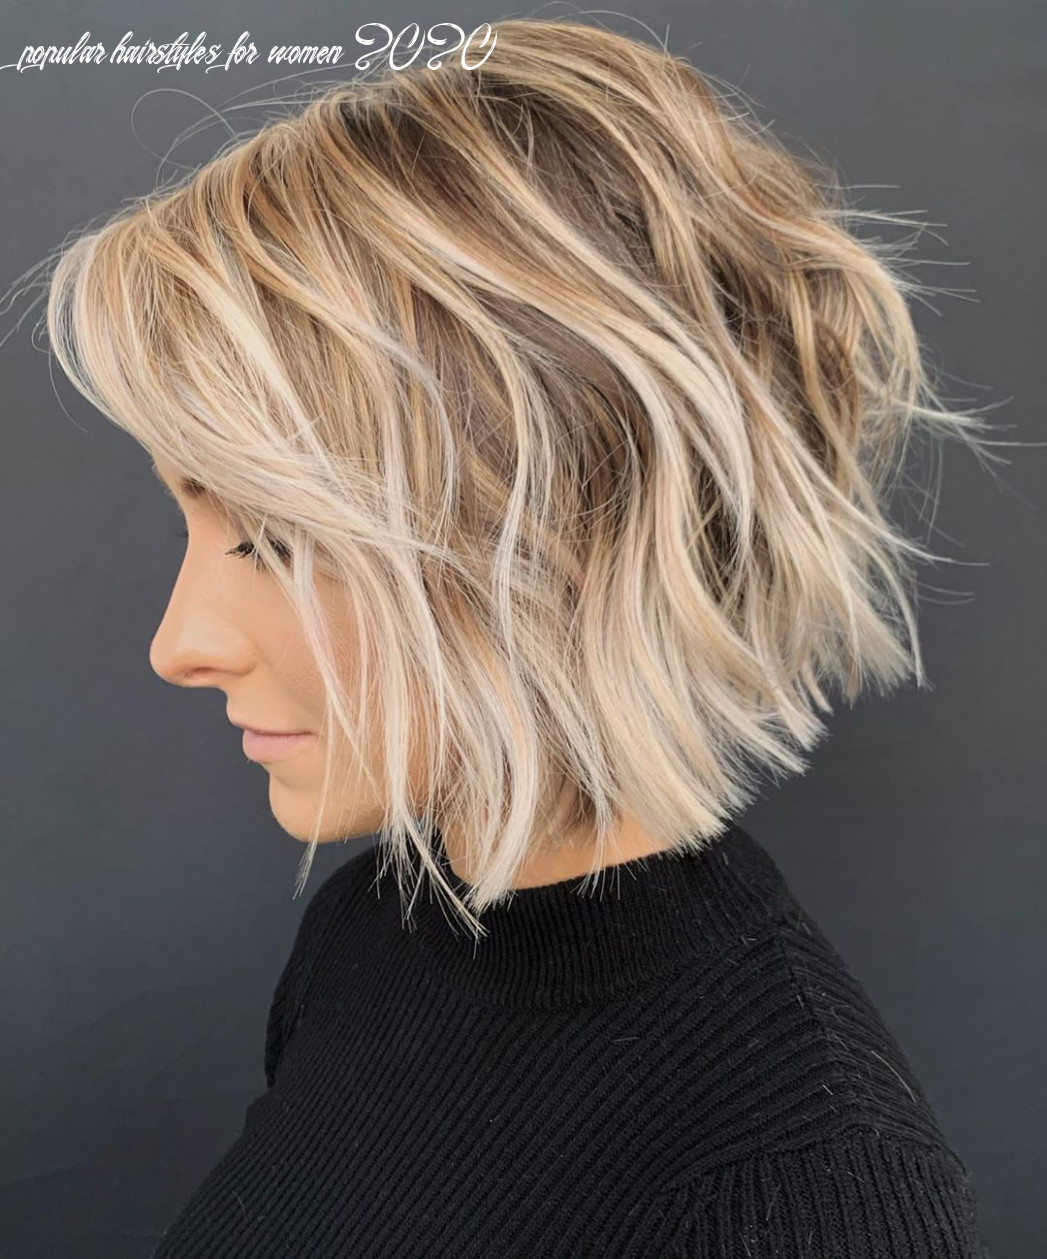 11 newest haircut ideas and haircut trends for 11 hair adviser popular hairstyles for women 2020